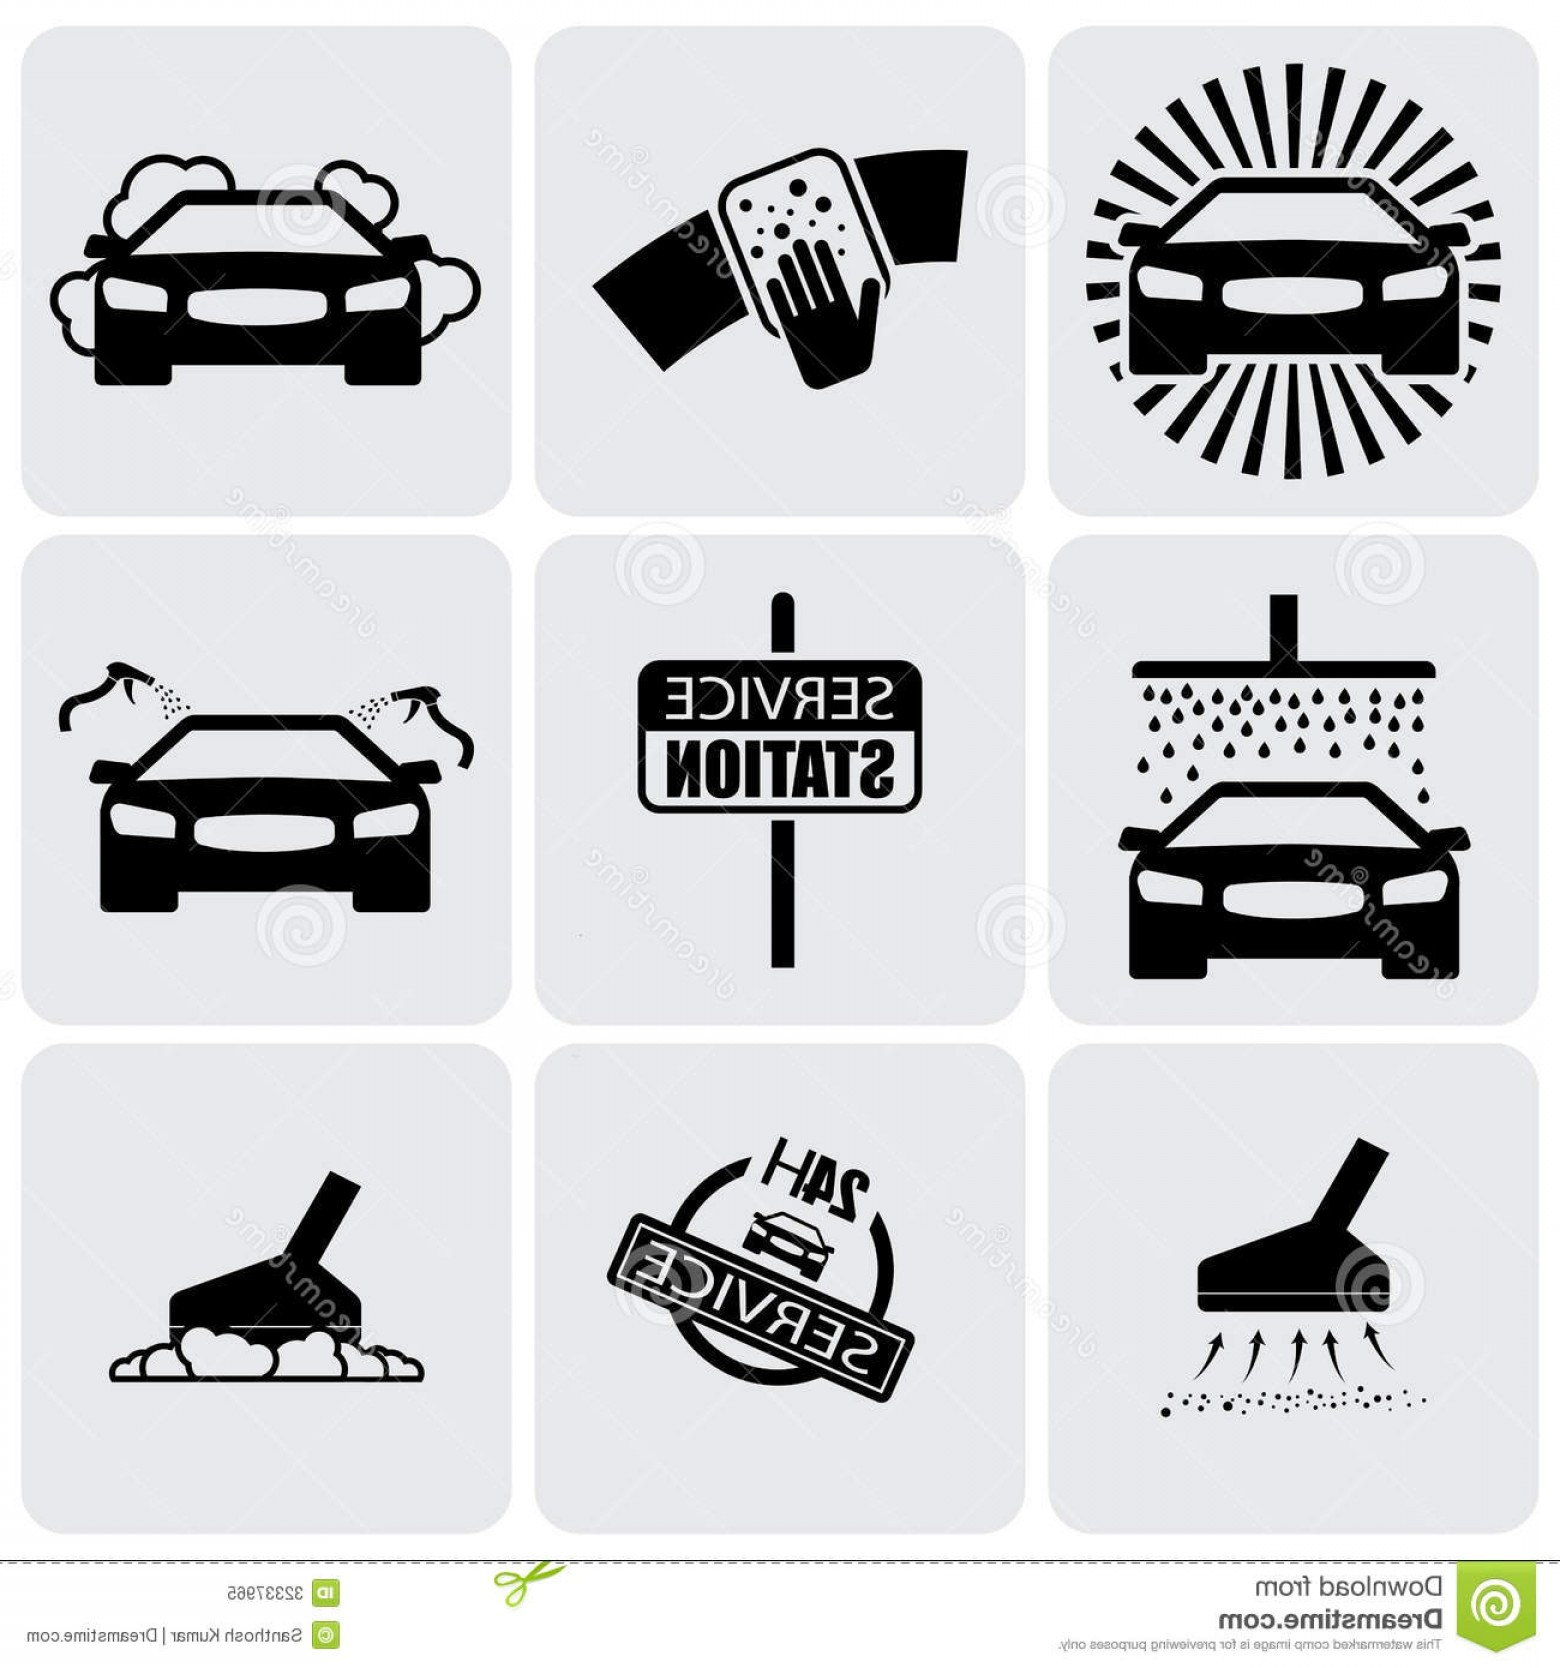 Car Wash Vector Graphics: Royalty Free Stock Photo Car Wash Icons Signs Set Cleaning Car Vector Graphic Illustration Represents Nine Symbols Washing Image